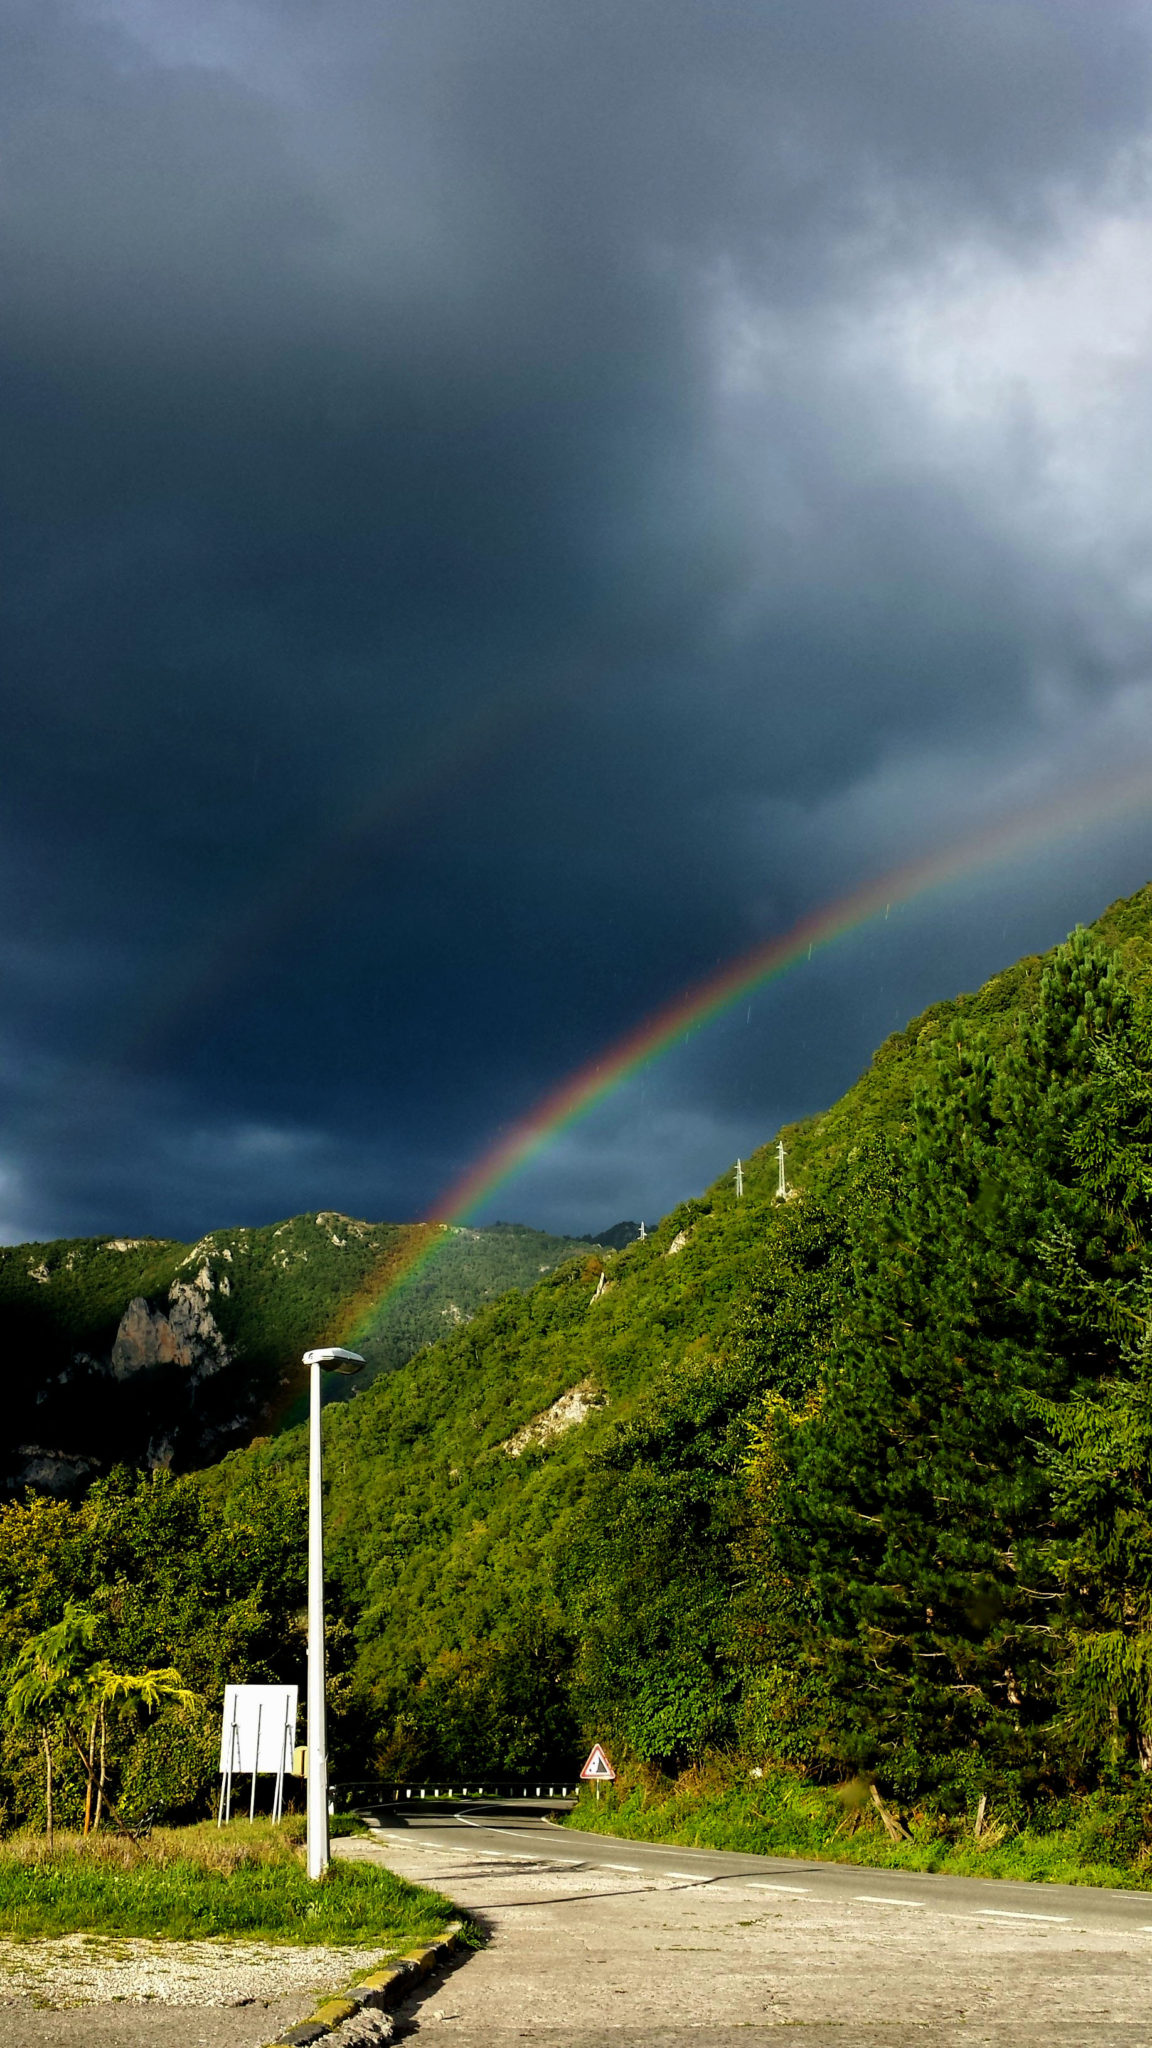 Hemaposesesvalises_montenegro_double_rainbow_travel_voyage_blog4